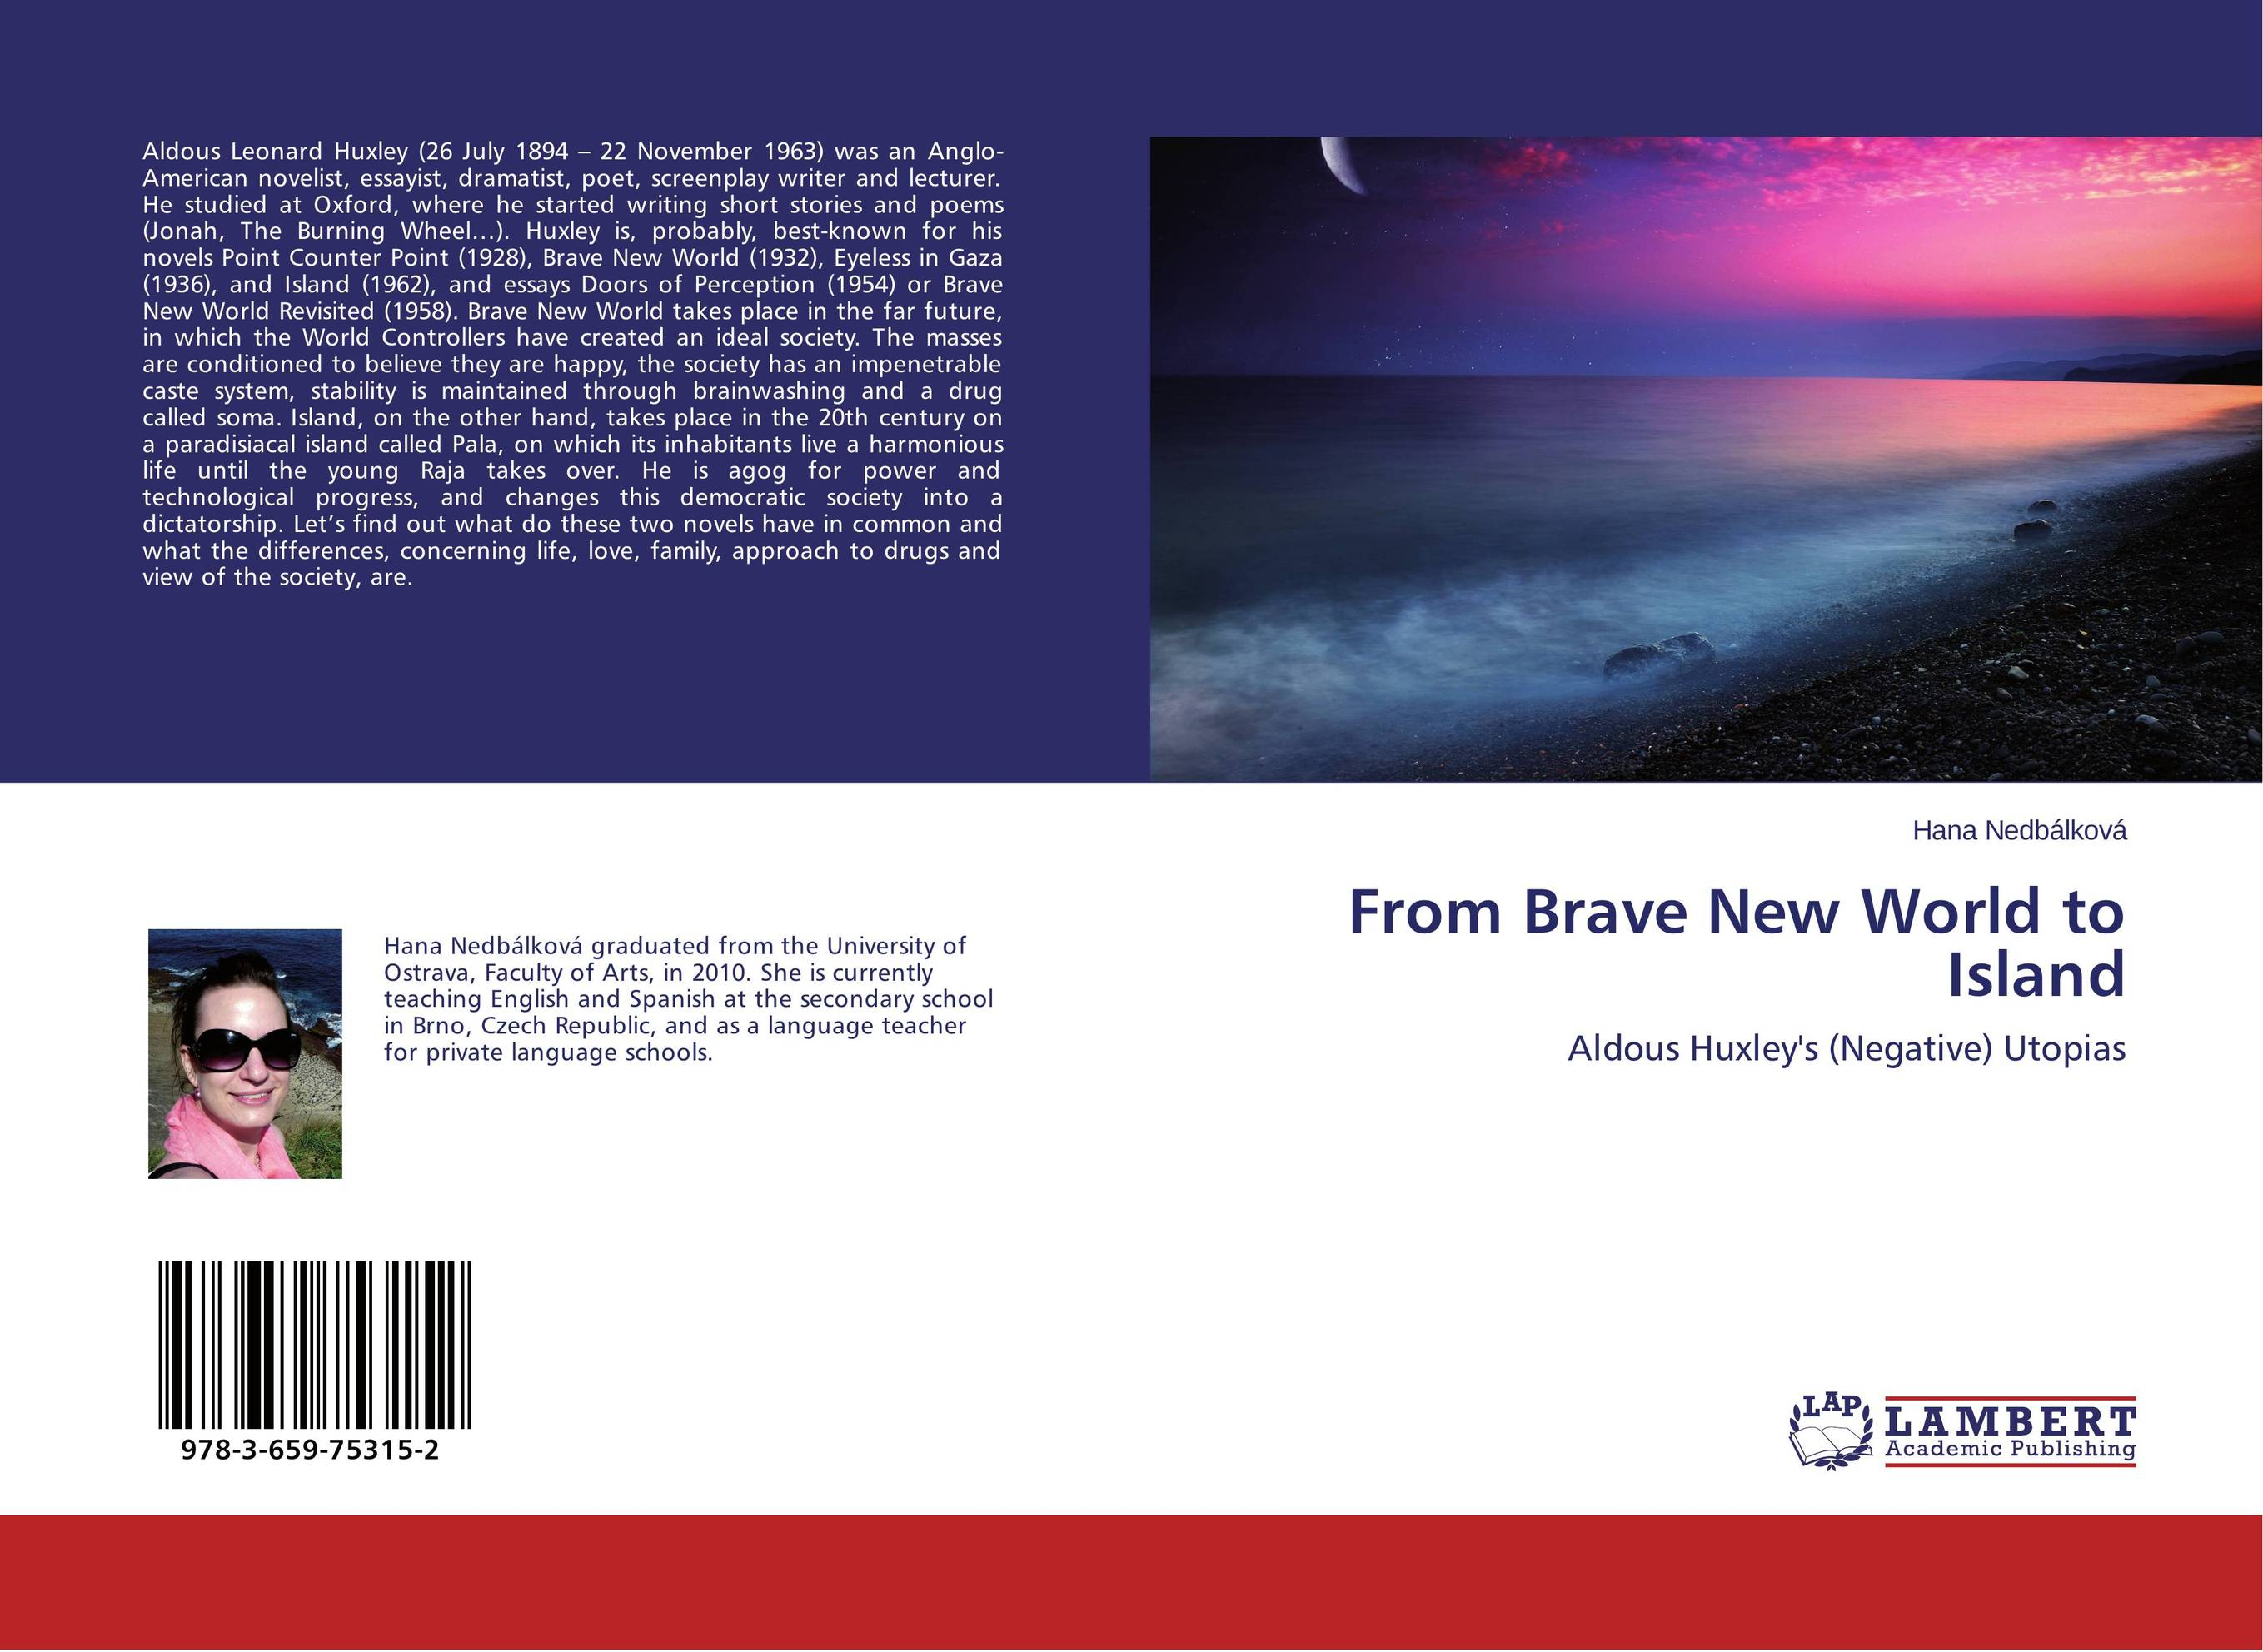 From Brave New World to Island earth 2 society vol 3 a whole new world